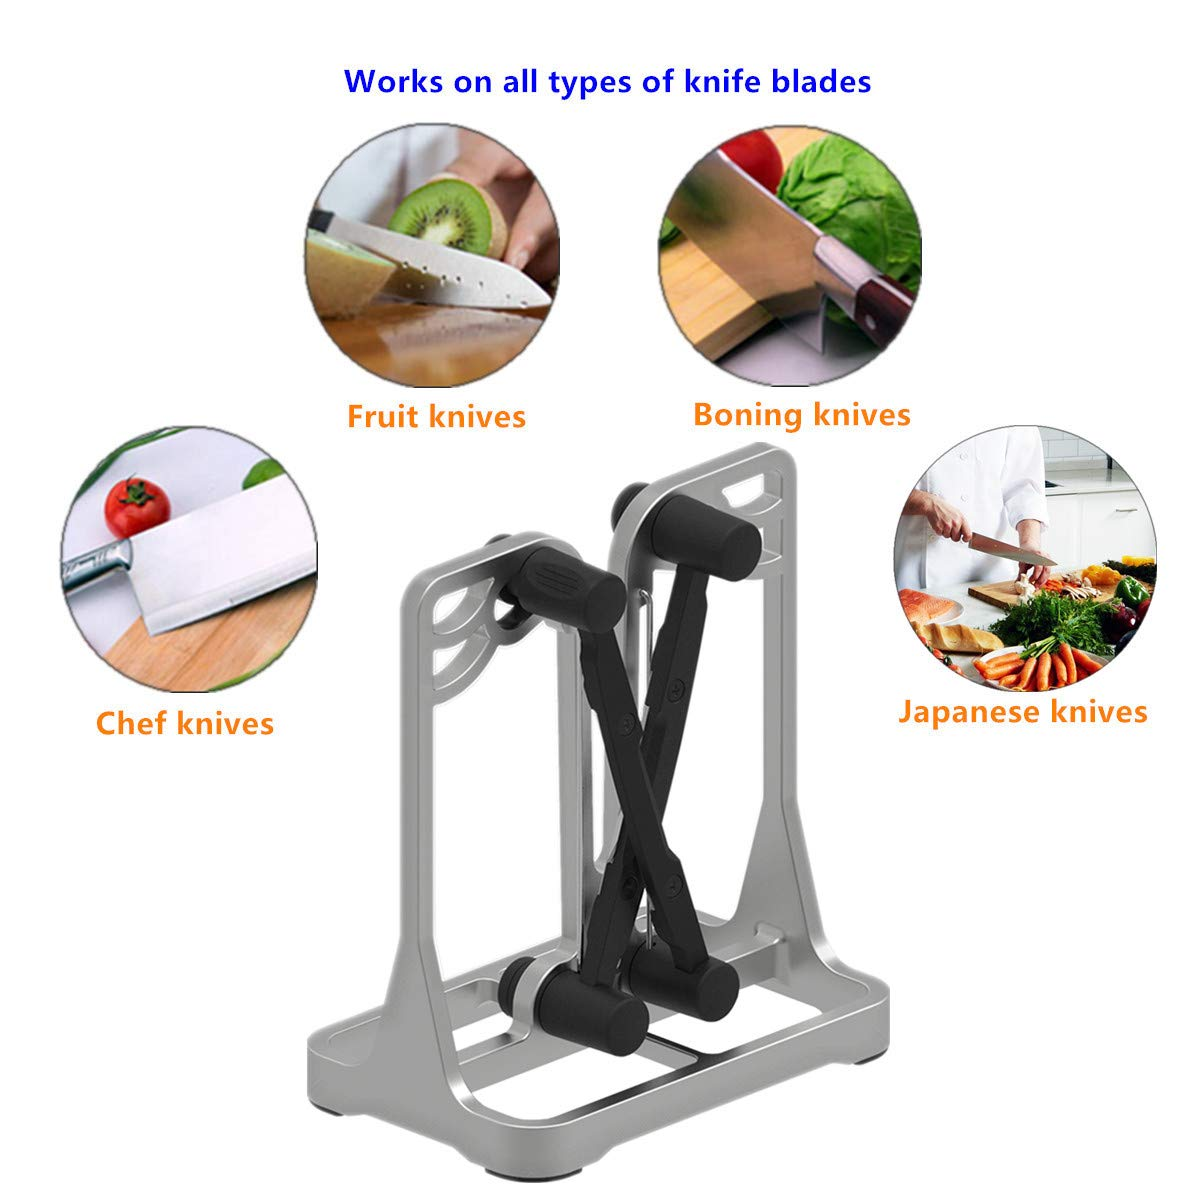 Knife Sharpener - Upgrade Made of Full Metal Bracket - Sharpens & Hones & Polishes Beveled Blades, Standard Blades, Chef's Knives - Safe & Easy to Use Kitchen Tools by Ehoyal by Ehoyal (Image #4)